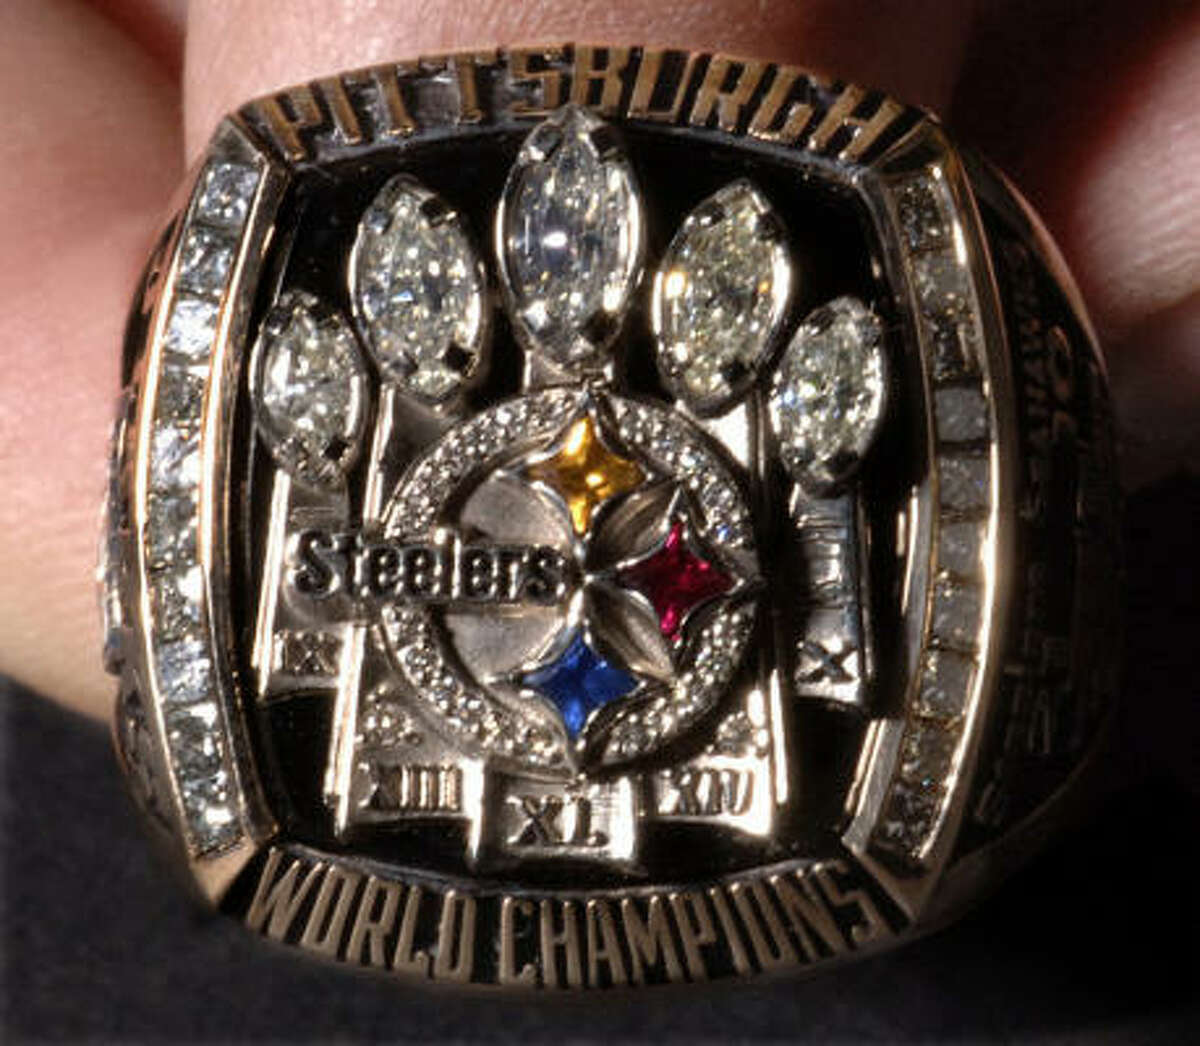 This is one of the National Football League Pittsburgh Steeler Super Bowl rings shown Sunday, June 4, 2006, during a ceremony at Heinz Field in Pittsburgh, Pa. Team owner Dan Rooney, retired running back Jerome Bettis and quarterback Ben Roethlisberger designed the ring. The yellow gold ring features five diamond Vince Lombardi trophies surrounding the Steelers' logo on the front. One side features a player's name and number; the other shows the game's 21-10 score and the numeral XL. The Steelers defeated the Seattle Seahawks in Super Bowl XL in Detroit in February. (AP Photo/Pittsburgh Post-Gazette, Peter Dian) * MAGS OUT NO SALES **